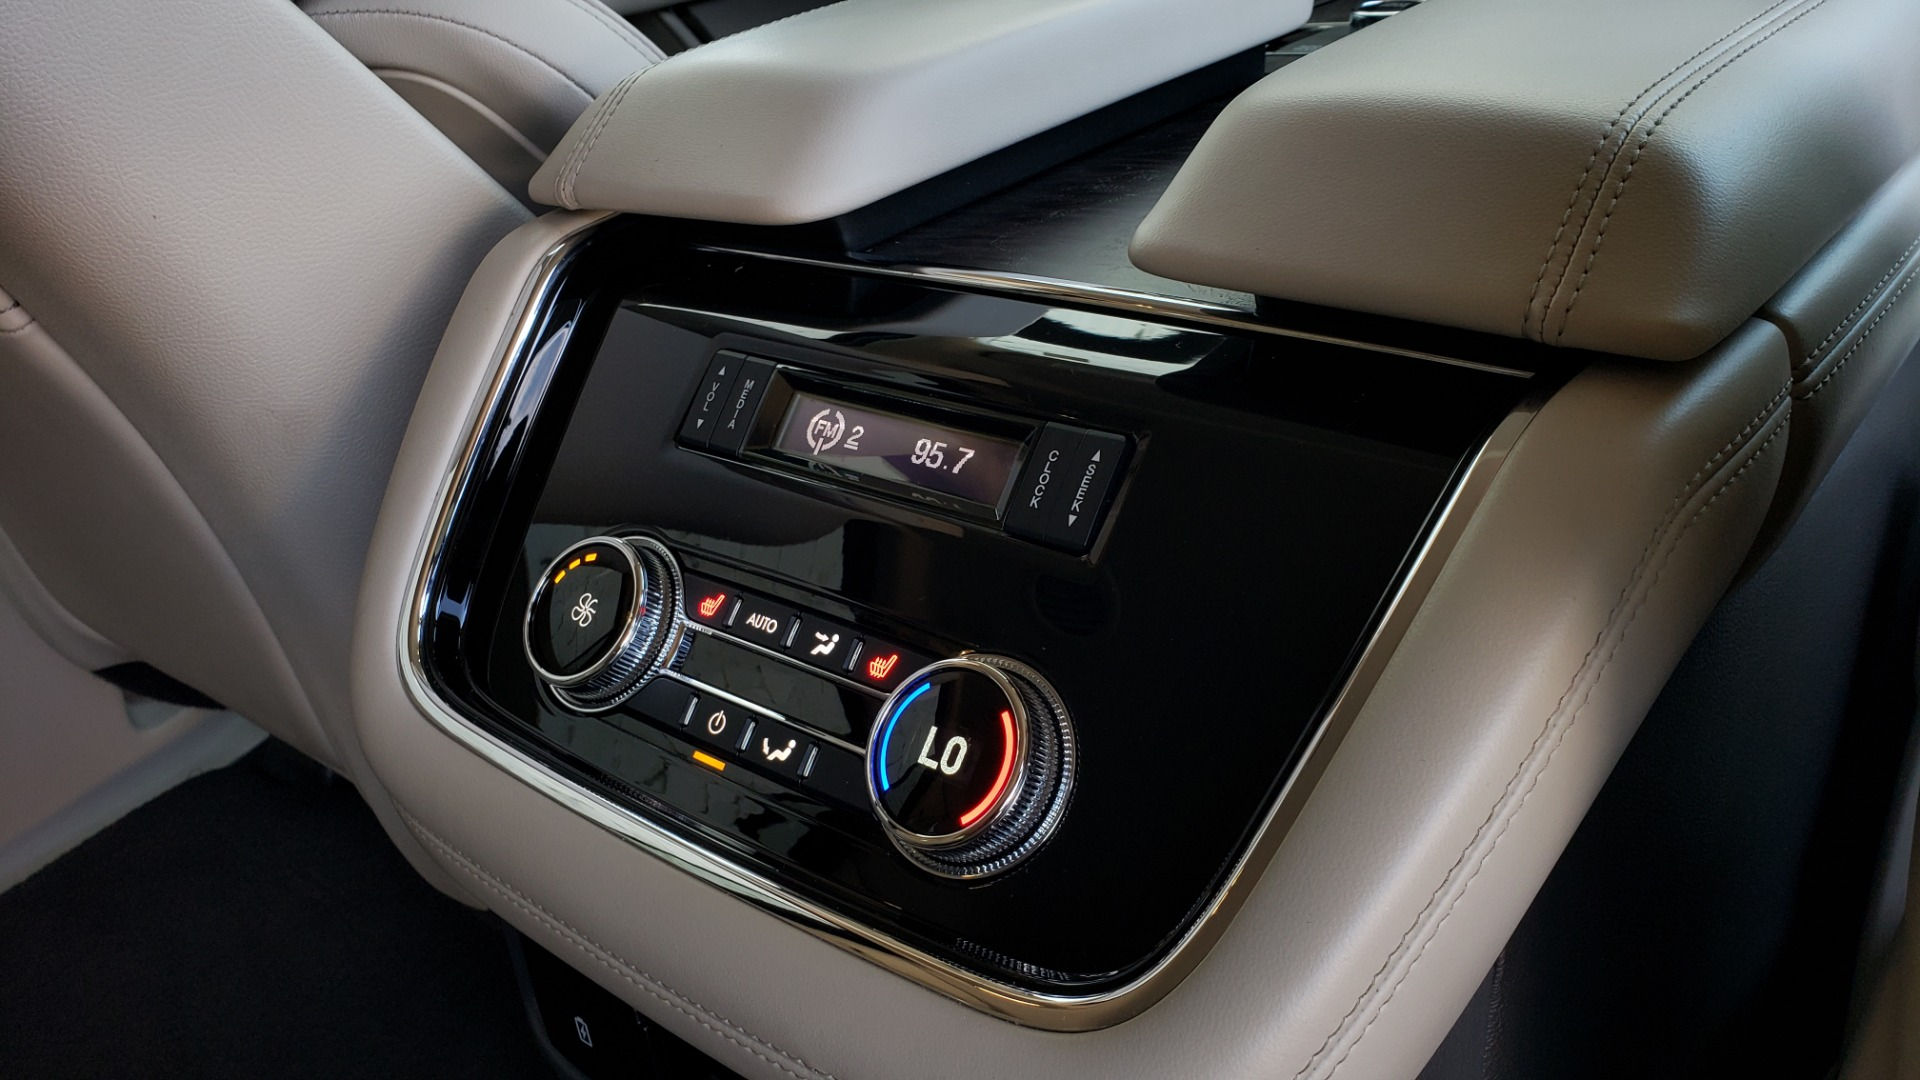 Used 2018 Lincoln NAVIGATOR PREMIERE 4X2 / TWIN-TURBO V6 / NAV / 3-ROW / REARVIEW for sale Sold at Formula Imports in Charlotte NC 28227 86